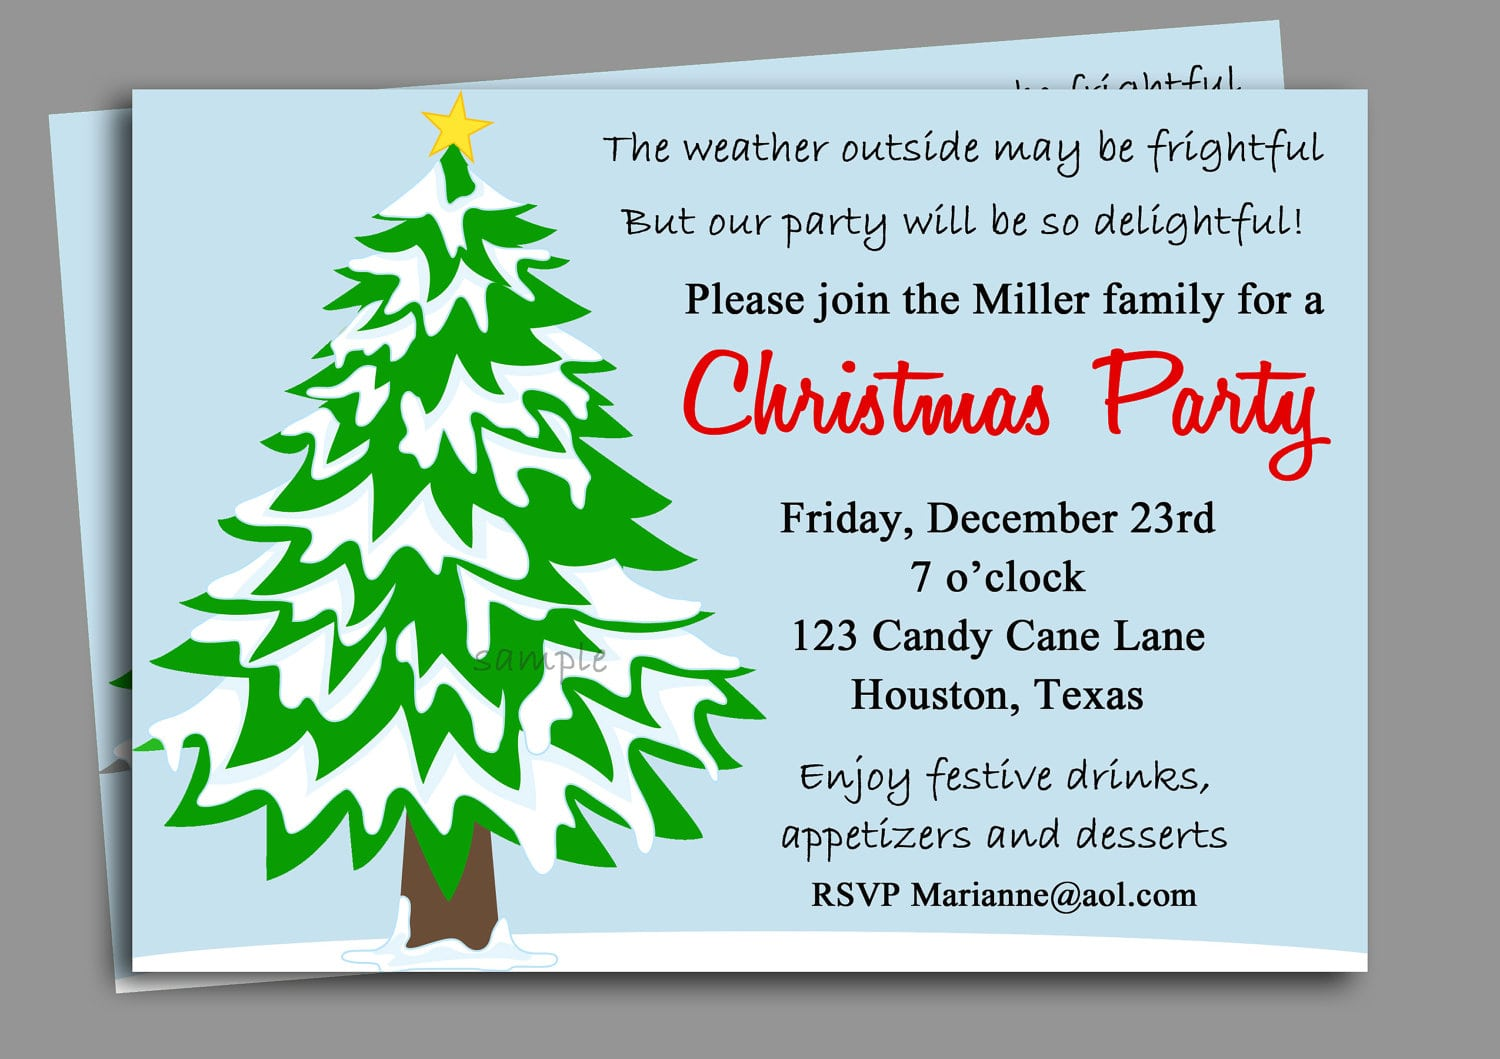 Office Christmas Party Invitation Email